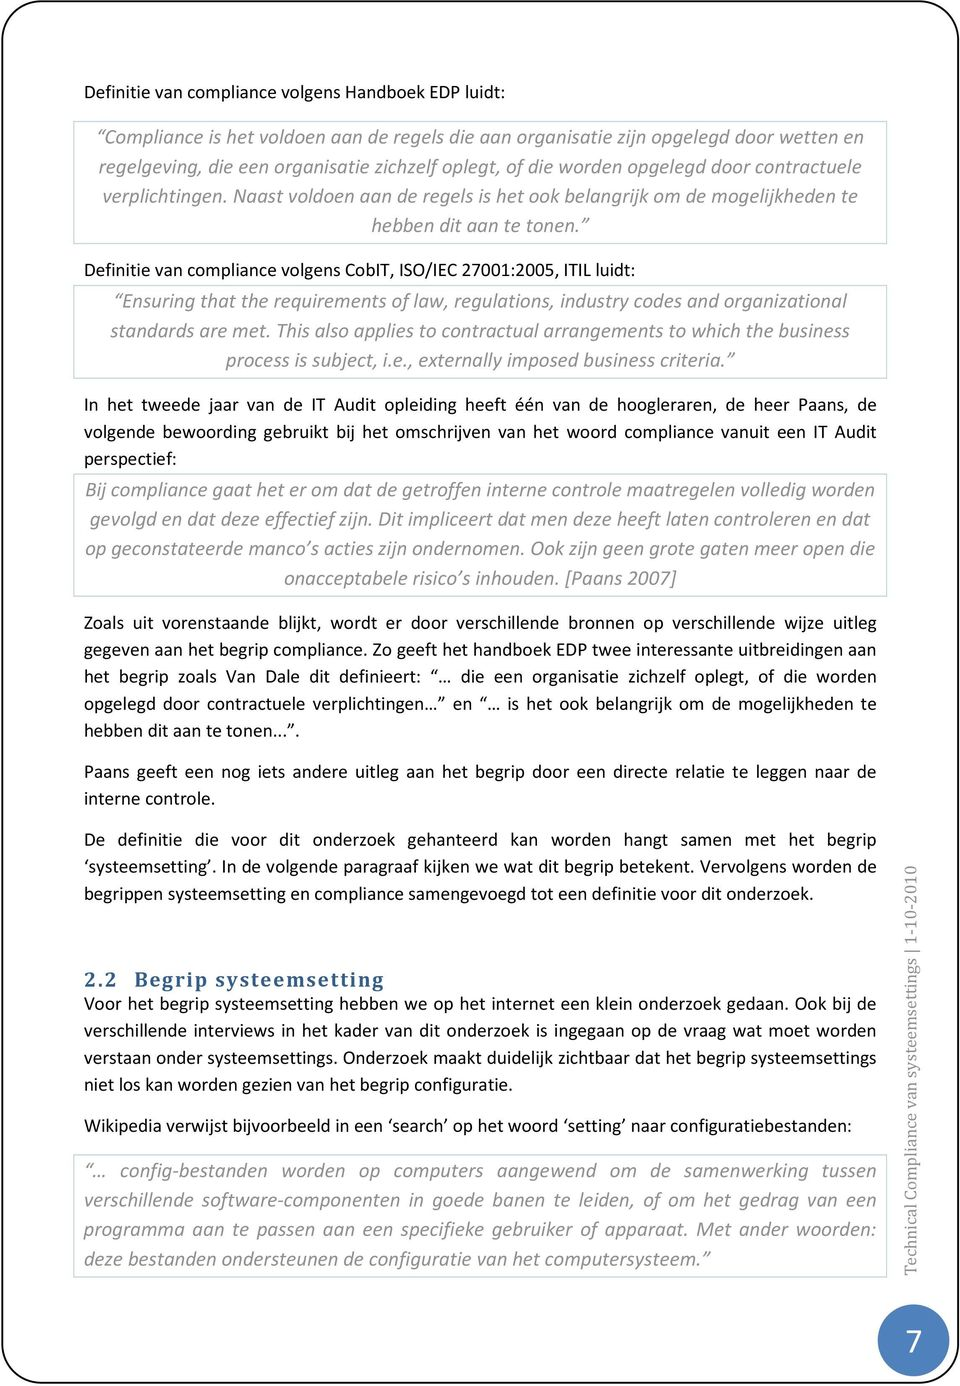 Definitie van compliance volgens CobIT, ISO/IEC 27001:2005, ITIL luidt: Ensuring that the requirements of law, regulations, industry codes and organizational standards are met.